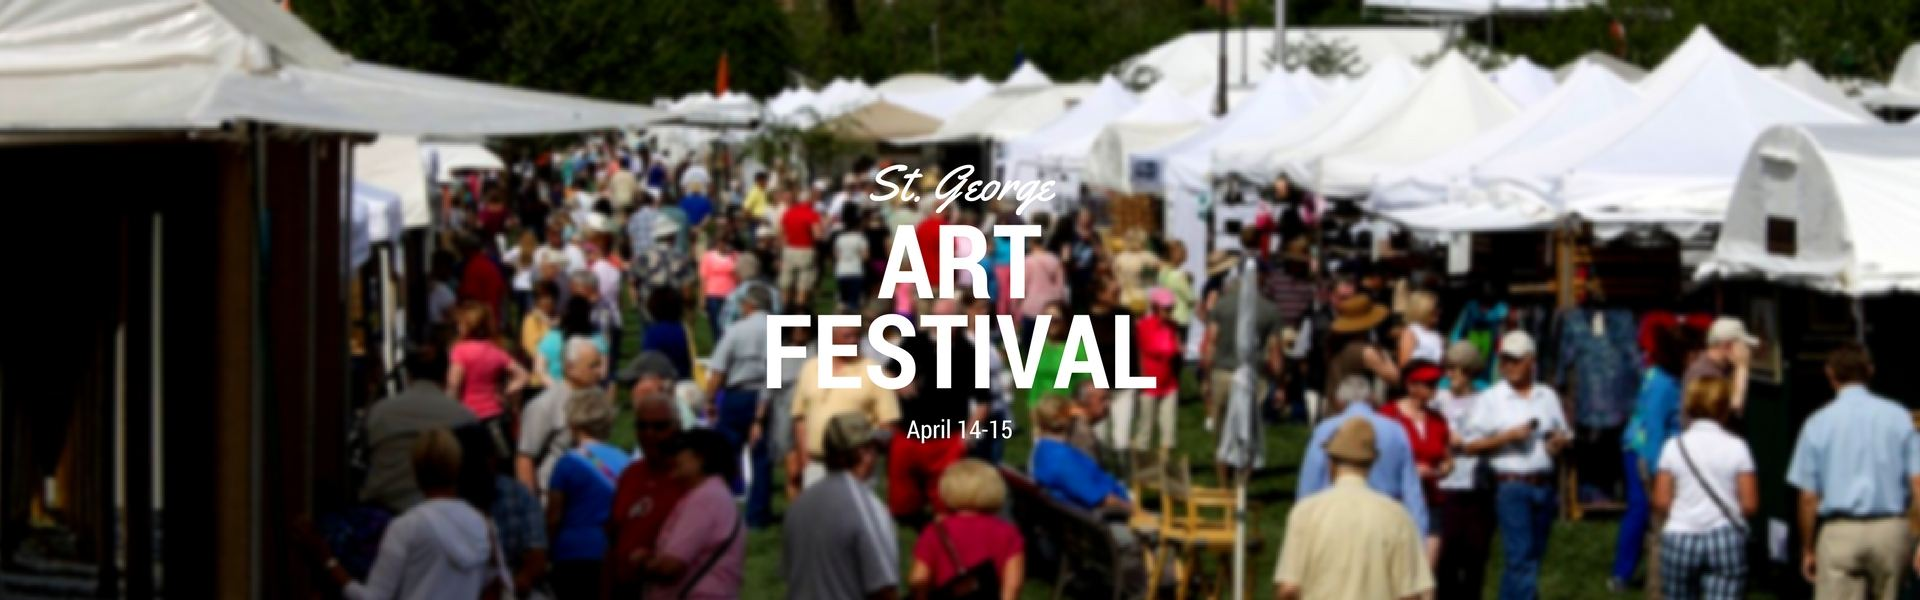 St. George art festival